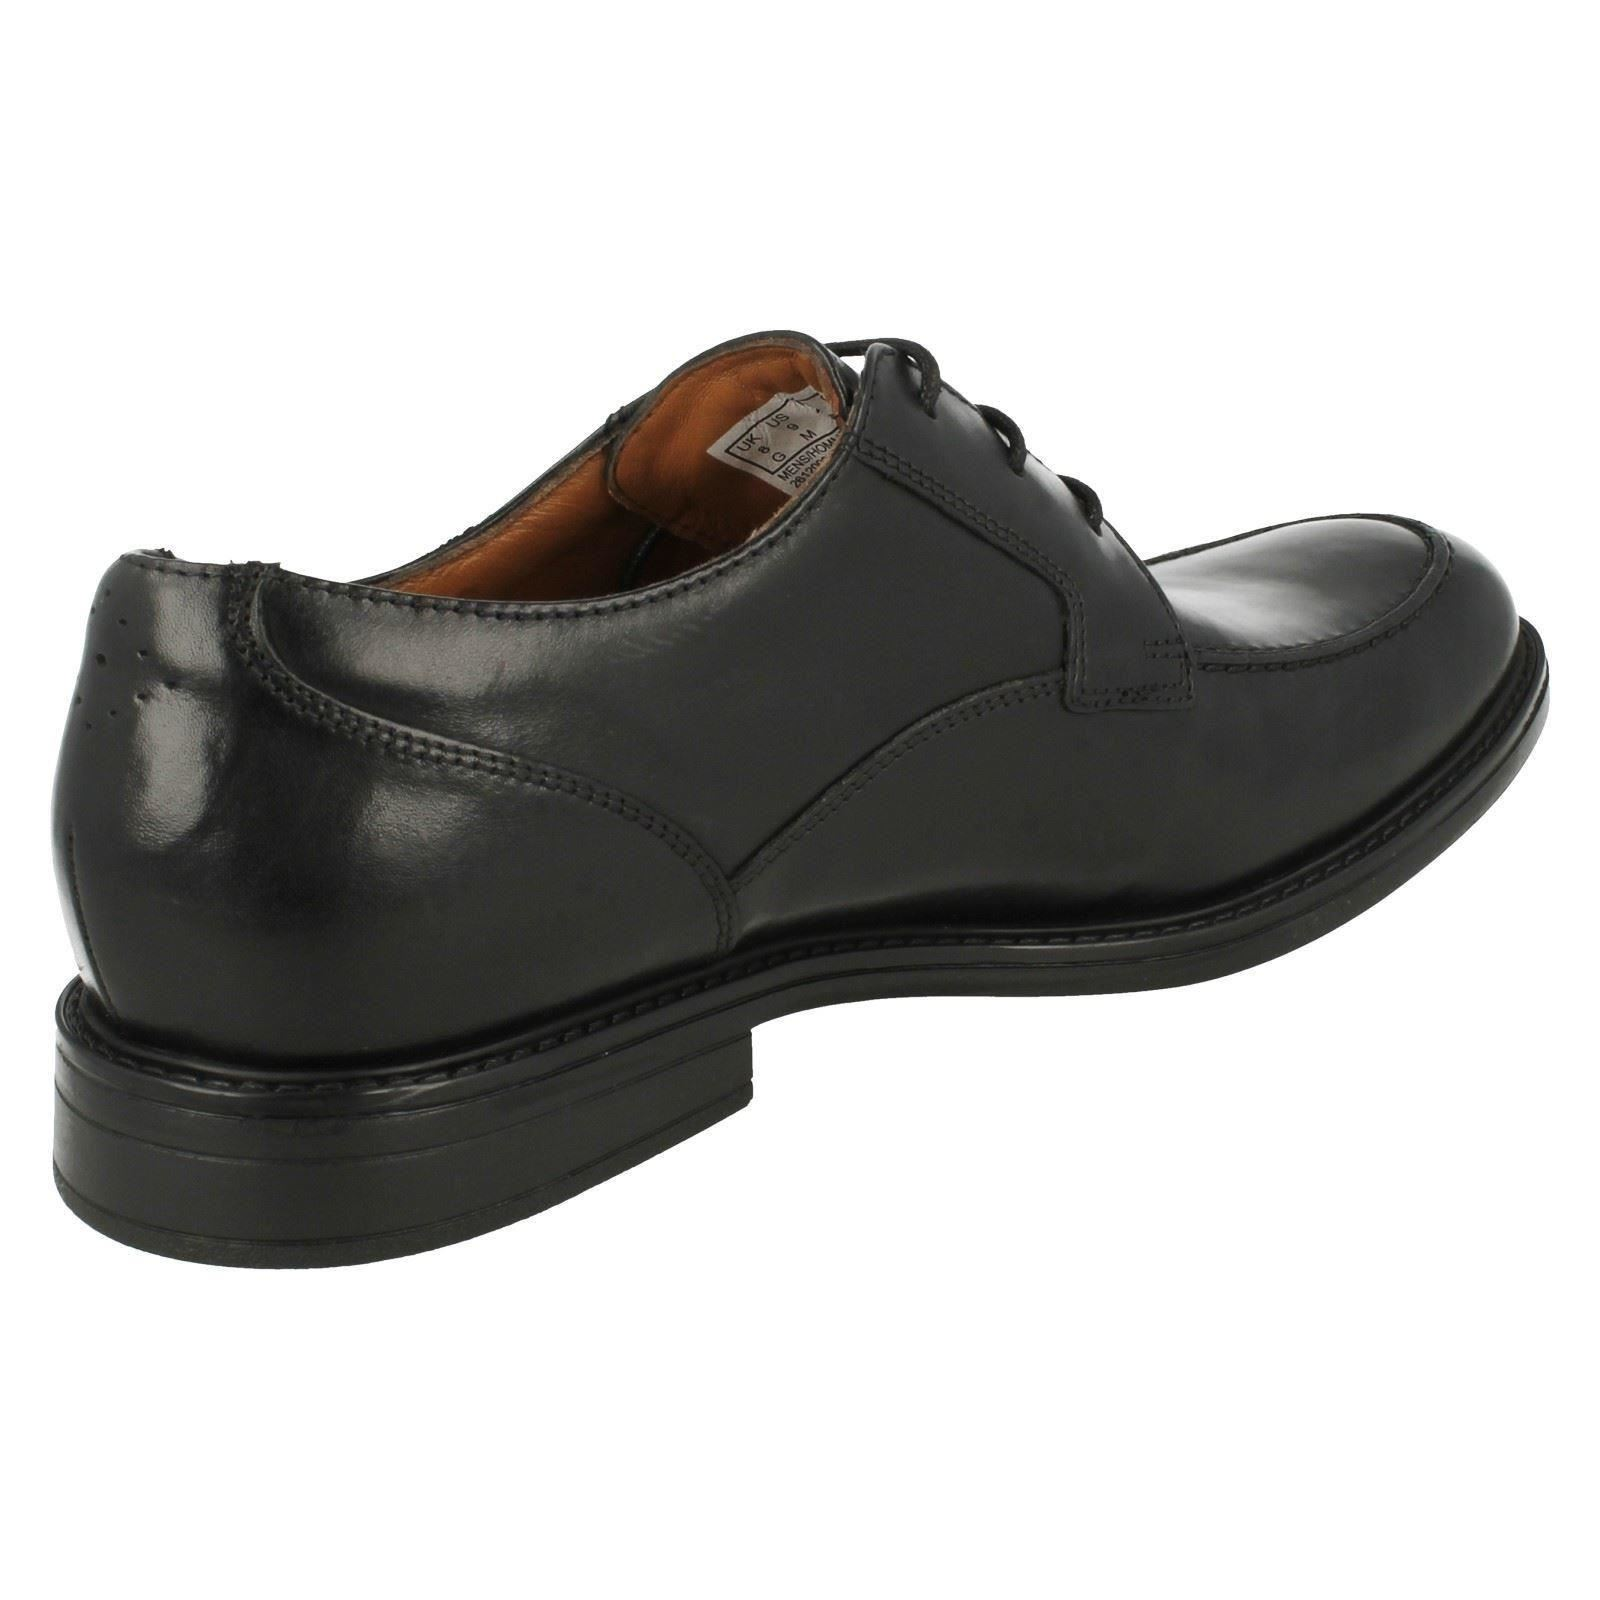 Mens Clarks Formal Lace Up Shoes Beckfield Apron